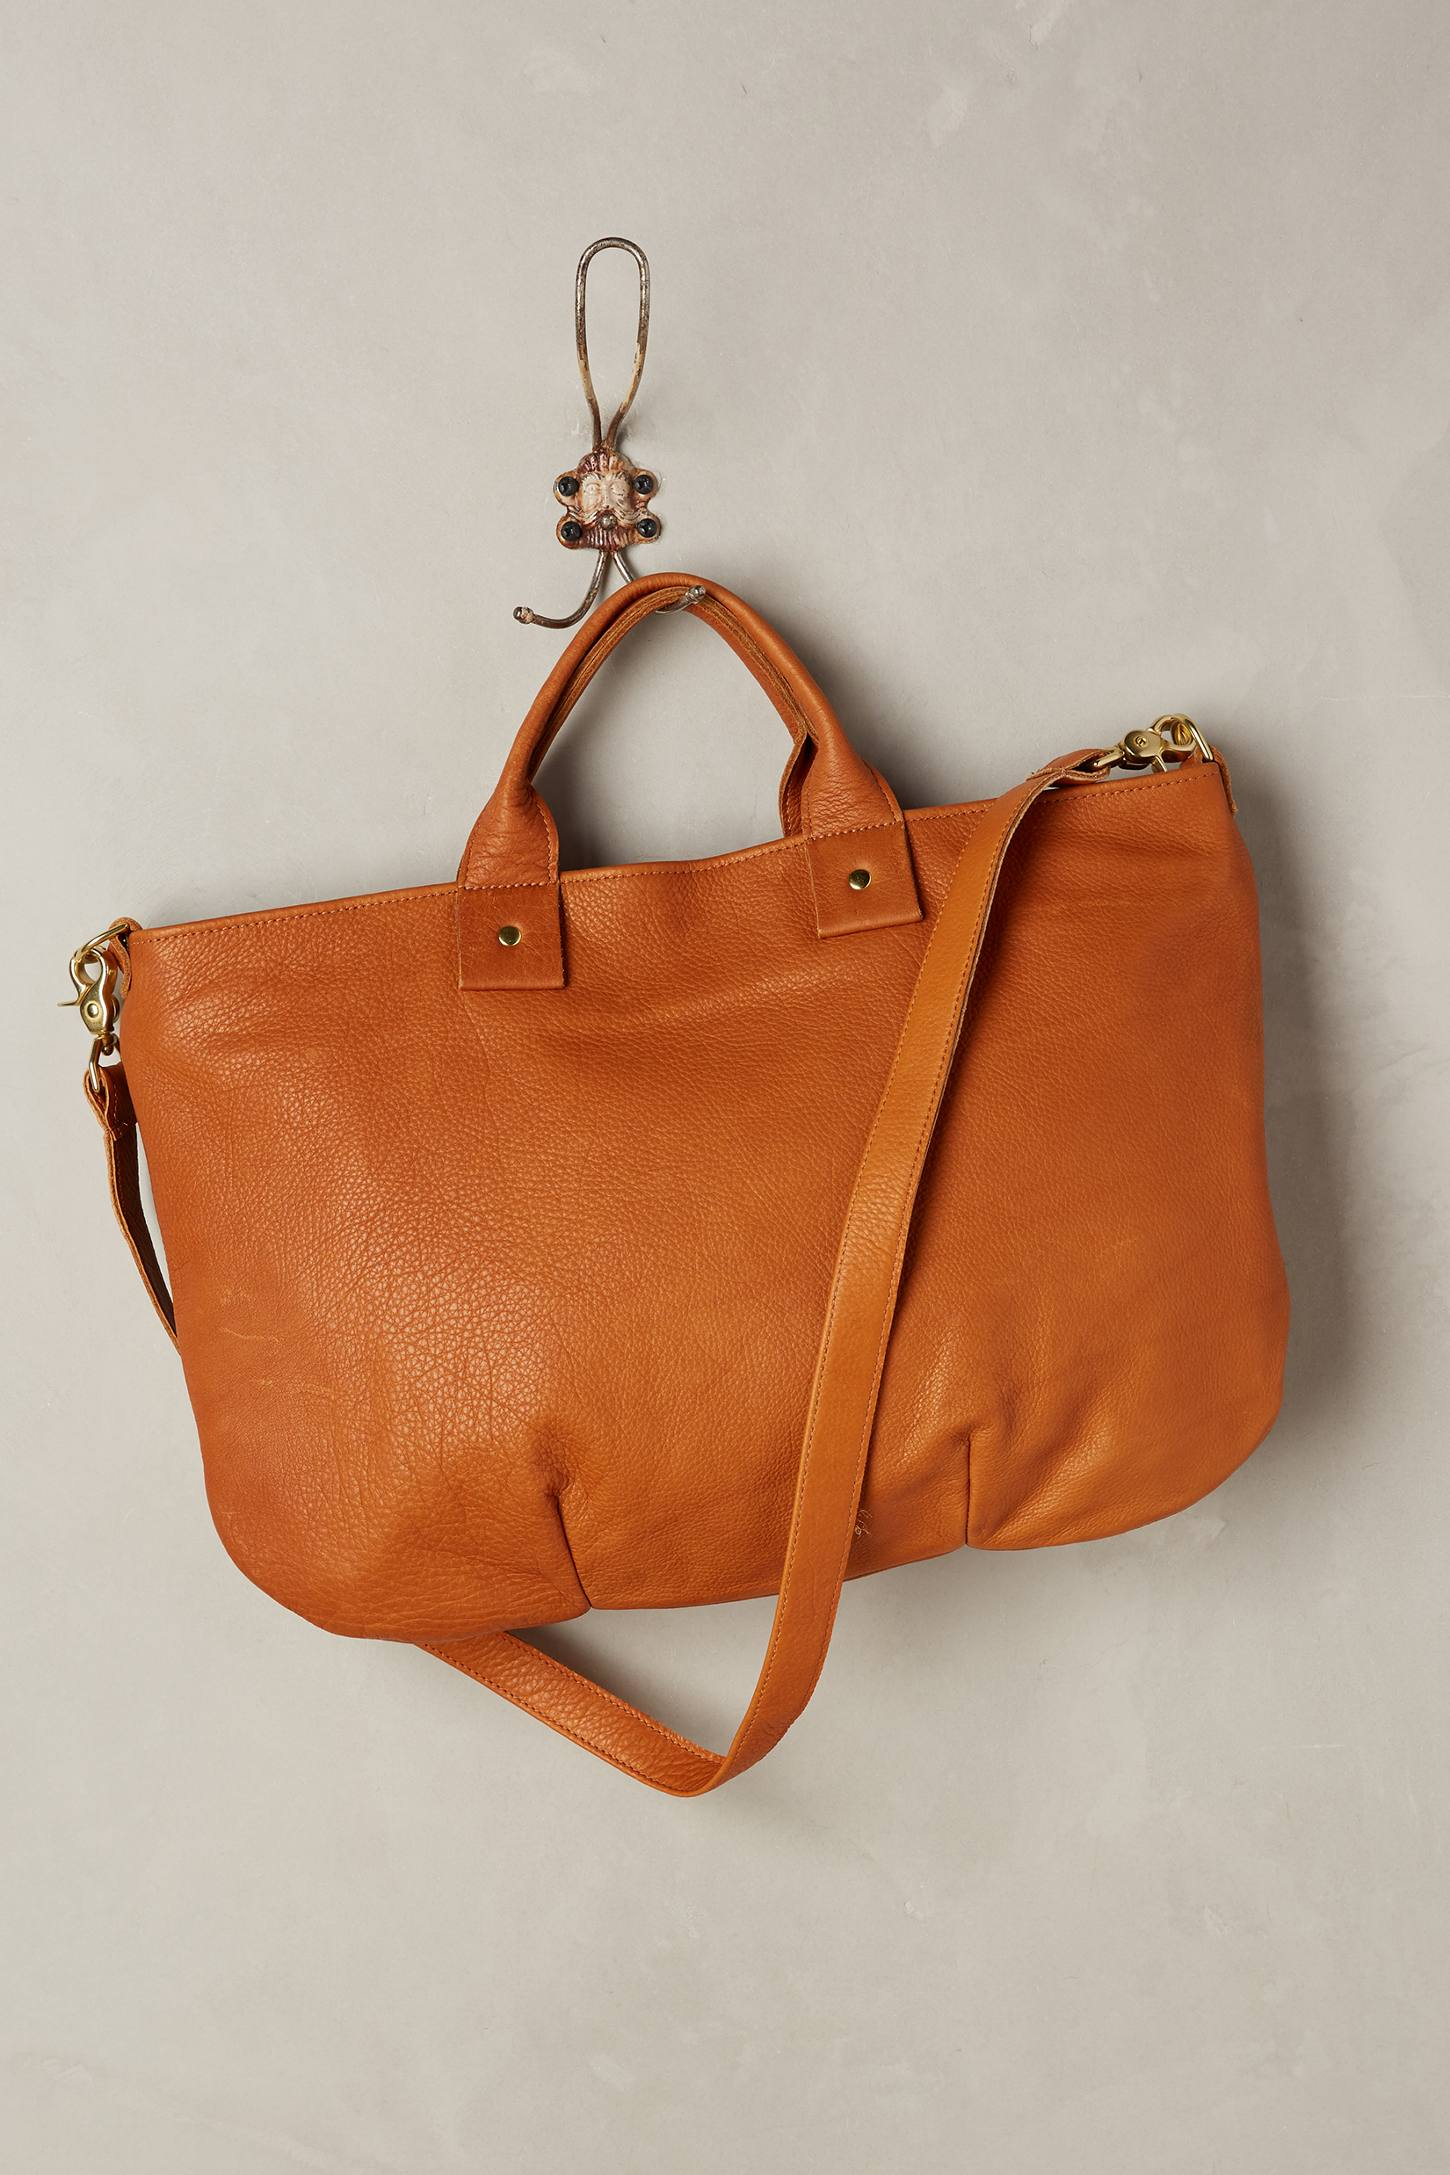 Clare V Messenger Satchel